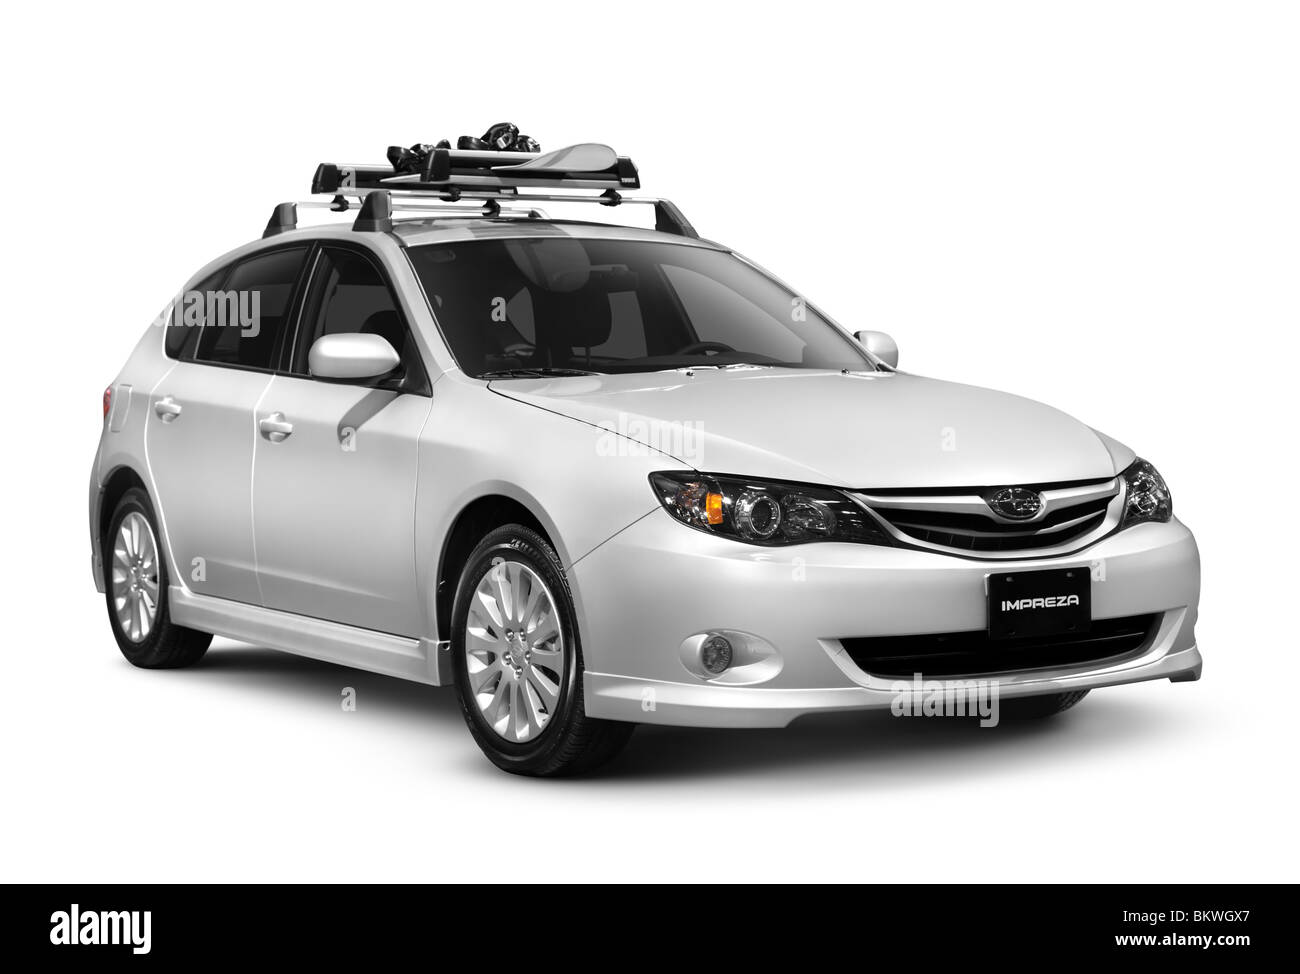 2010 Subaru Impreza 2.5i 5 Door Car With A Snowboard On The Roof Rack  Isolated On White Background